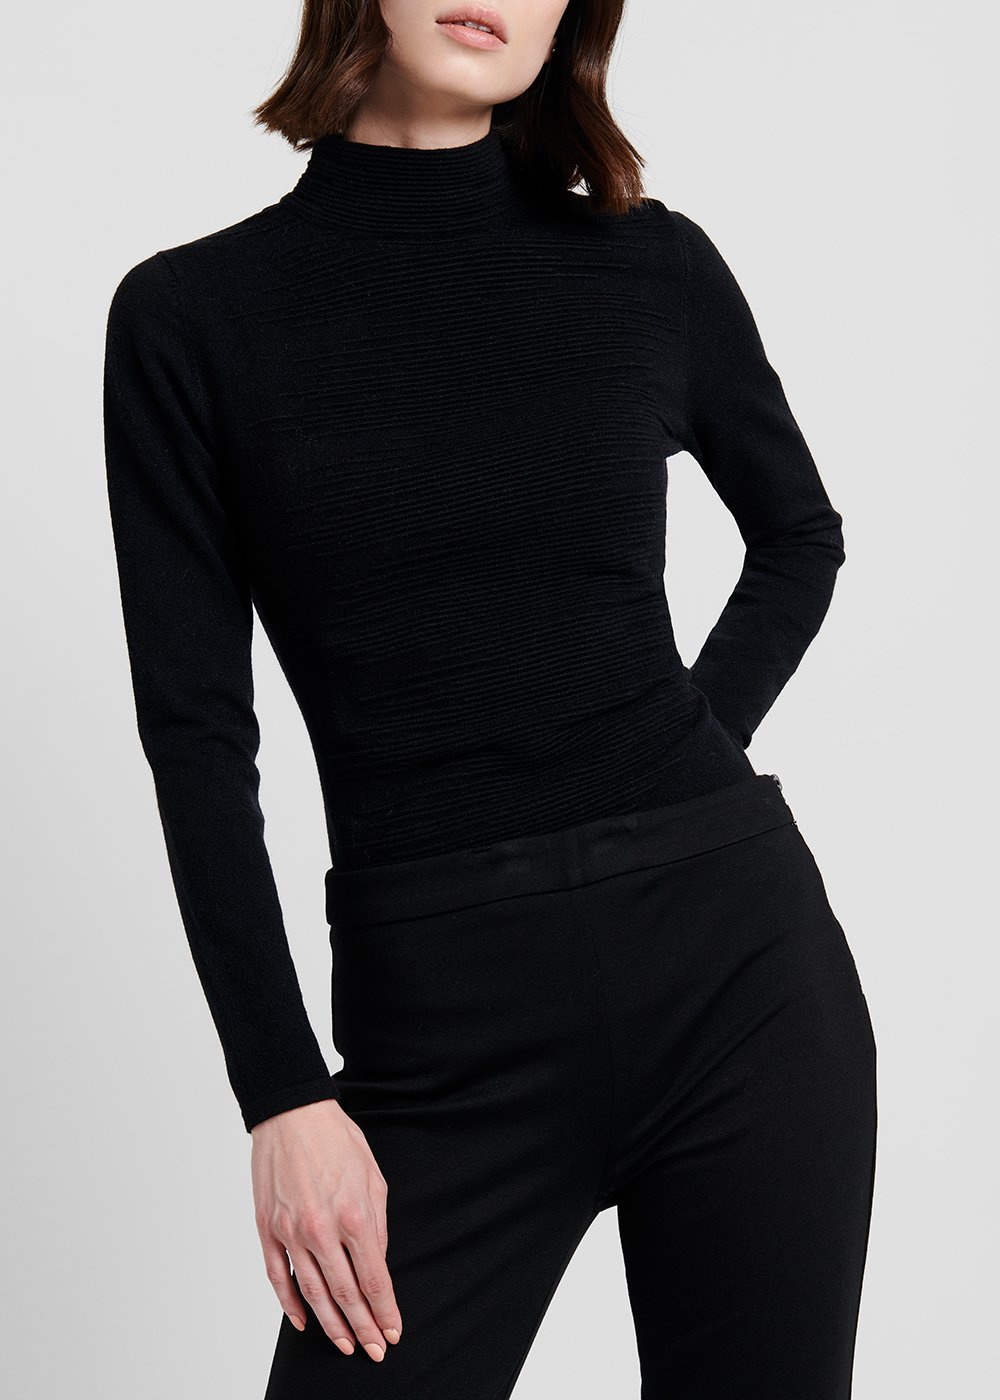 Turtleneck narrow-ribbed sweater - Black - Woman